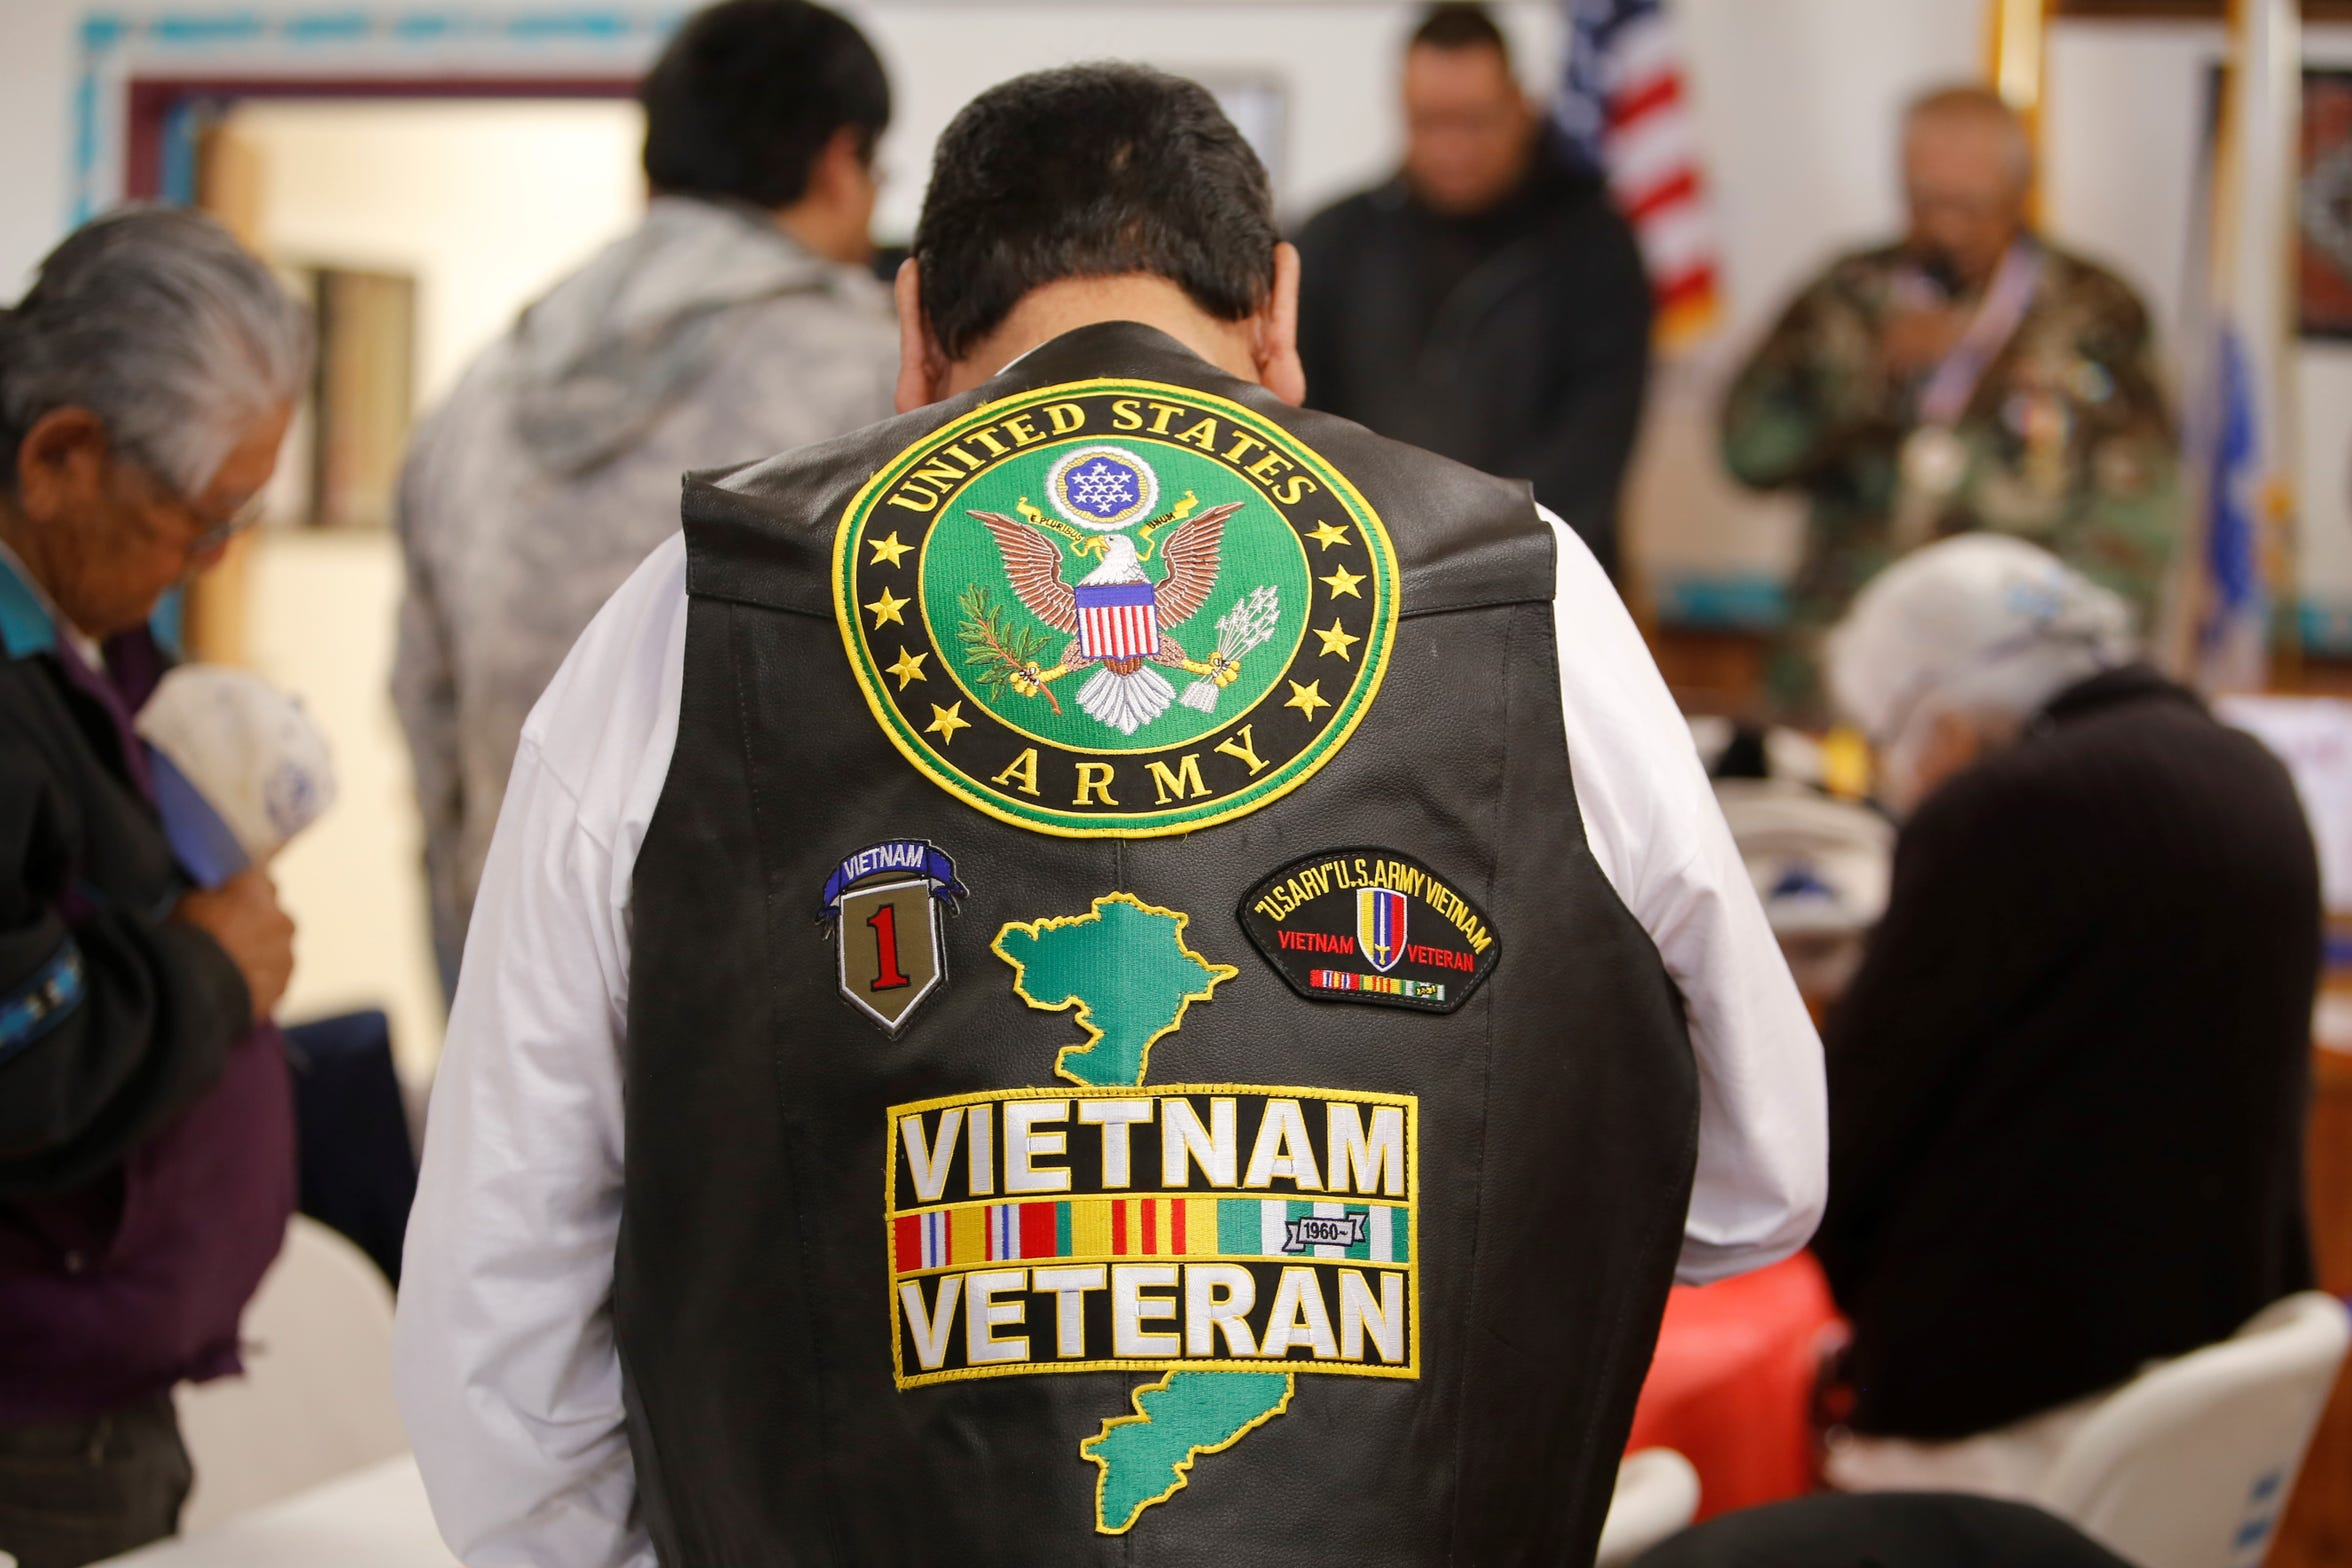 Emerson Watchman, an Army veteran who served in the Vietnam War, stands for a prayer during the Veterans Day event on Monday at the Tooh Haltsooí Chapter house in Sheep Springs.